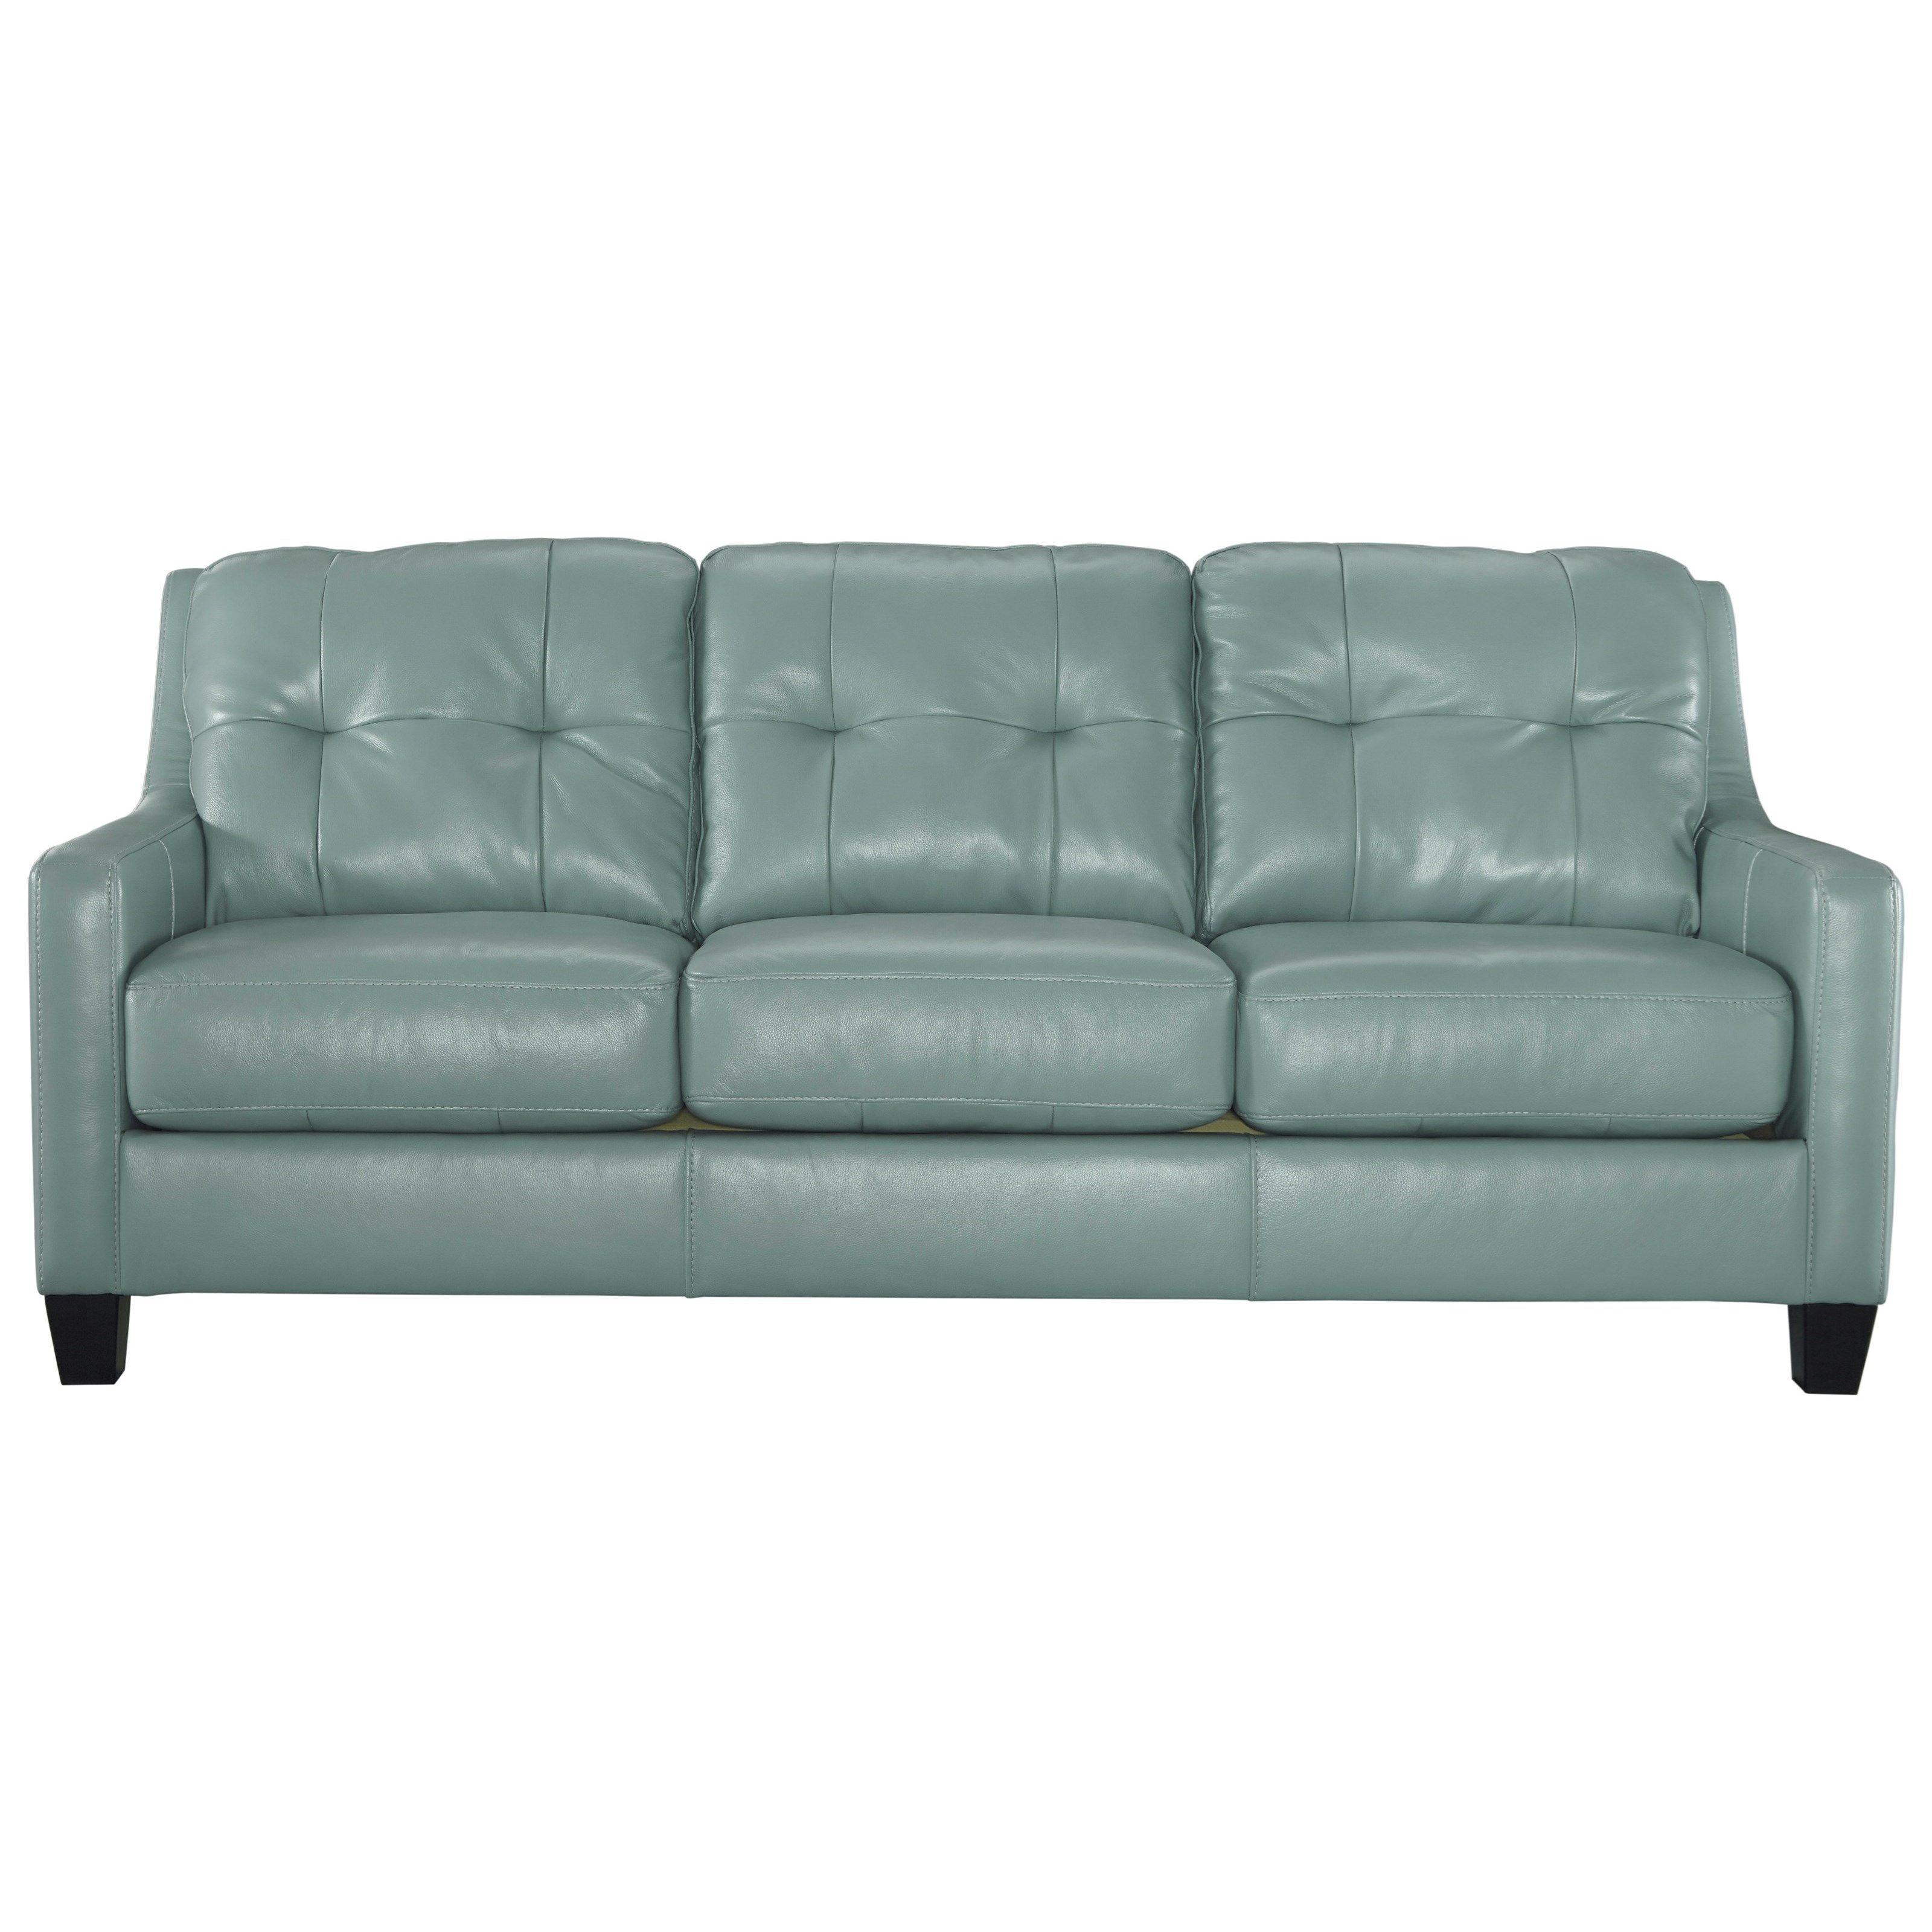 Pinvalentina Rusu On Beachy | Pinterest | Sofa Sleeper In Ashley Tufted Sofas (Image 7 of 10)